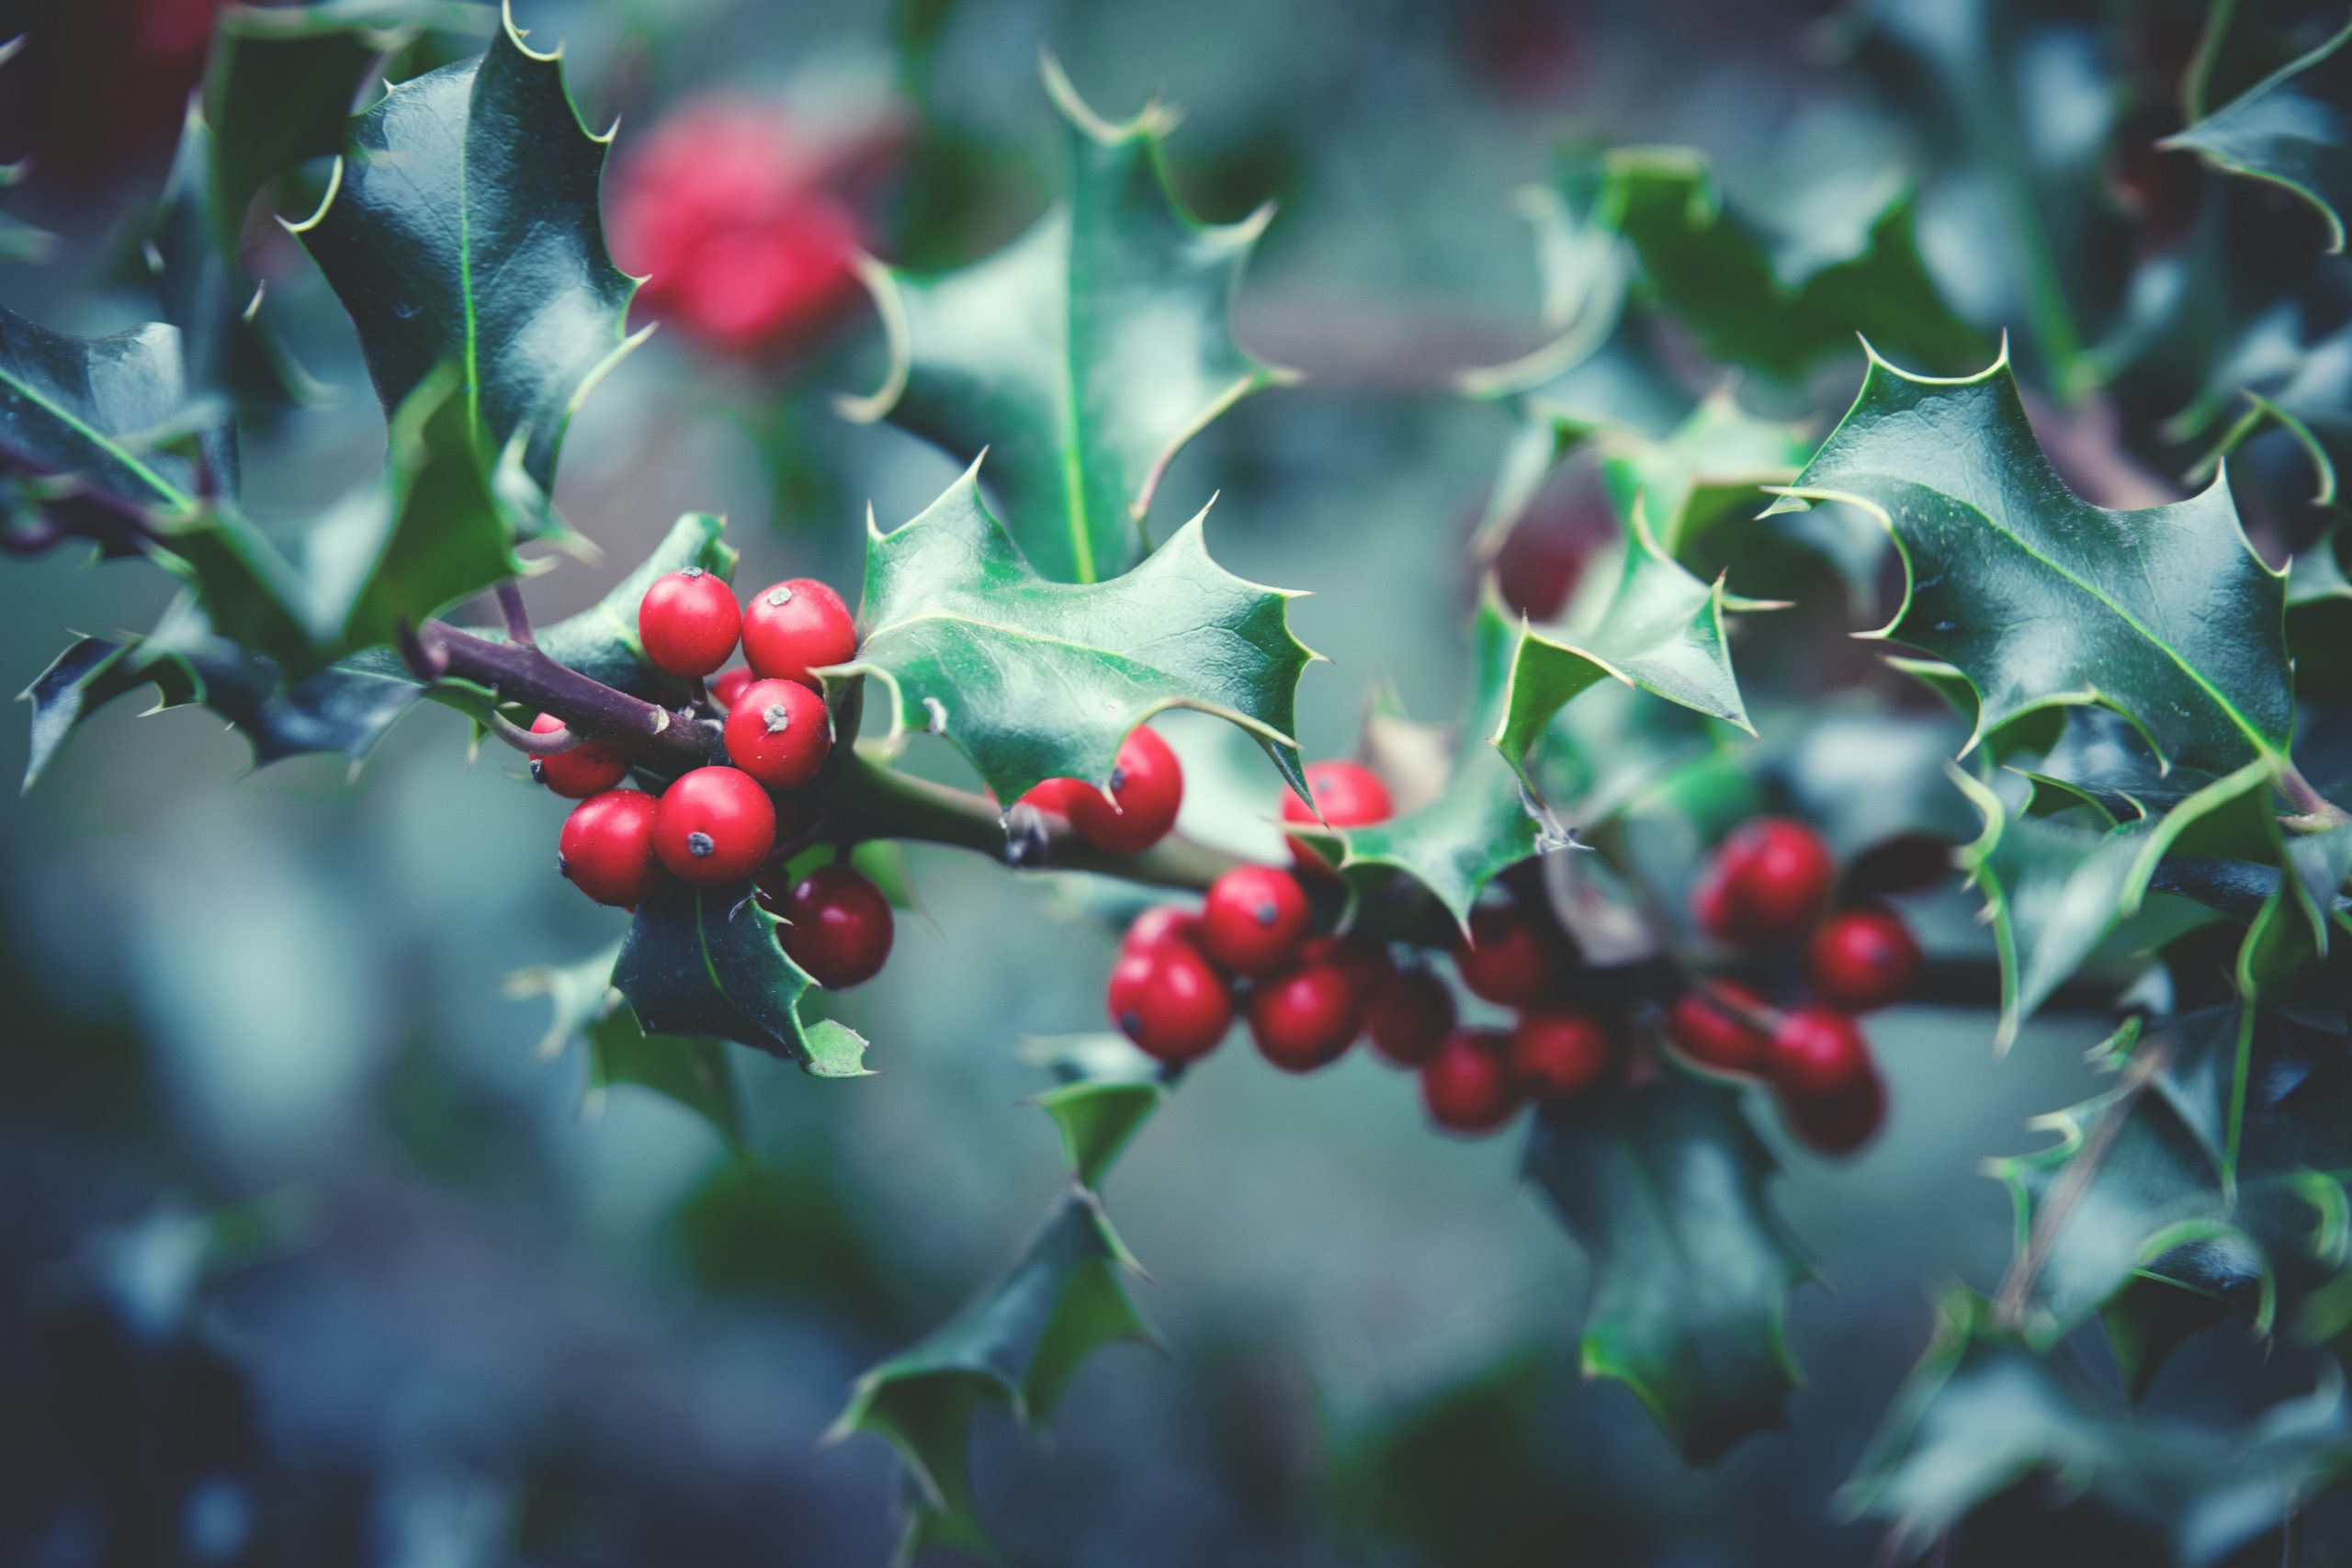 A holly tree with its signature prickly leaves and red berries.